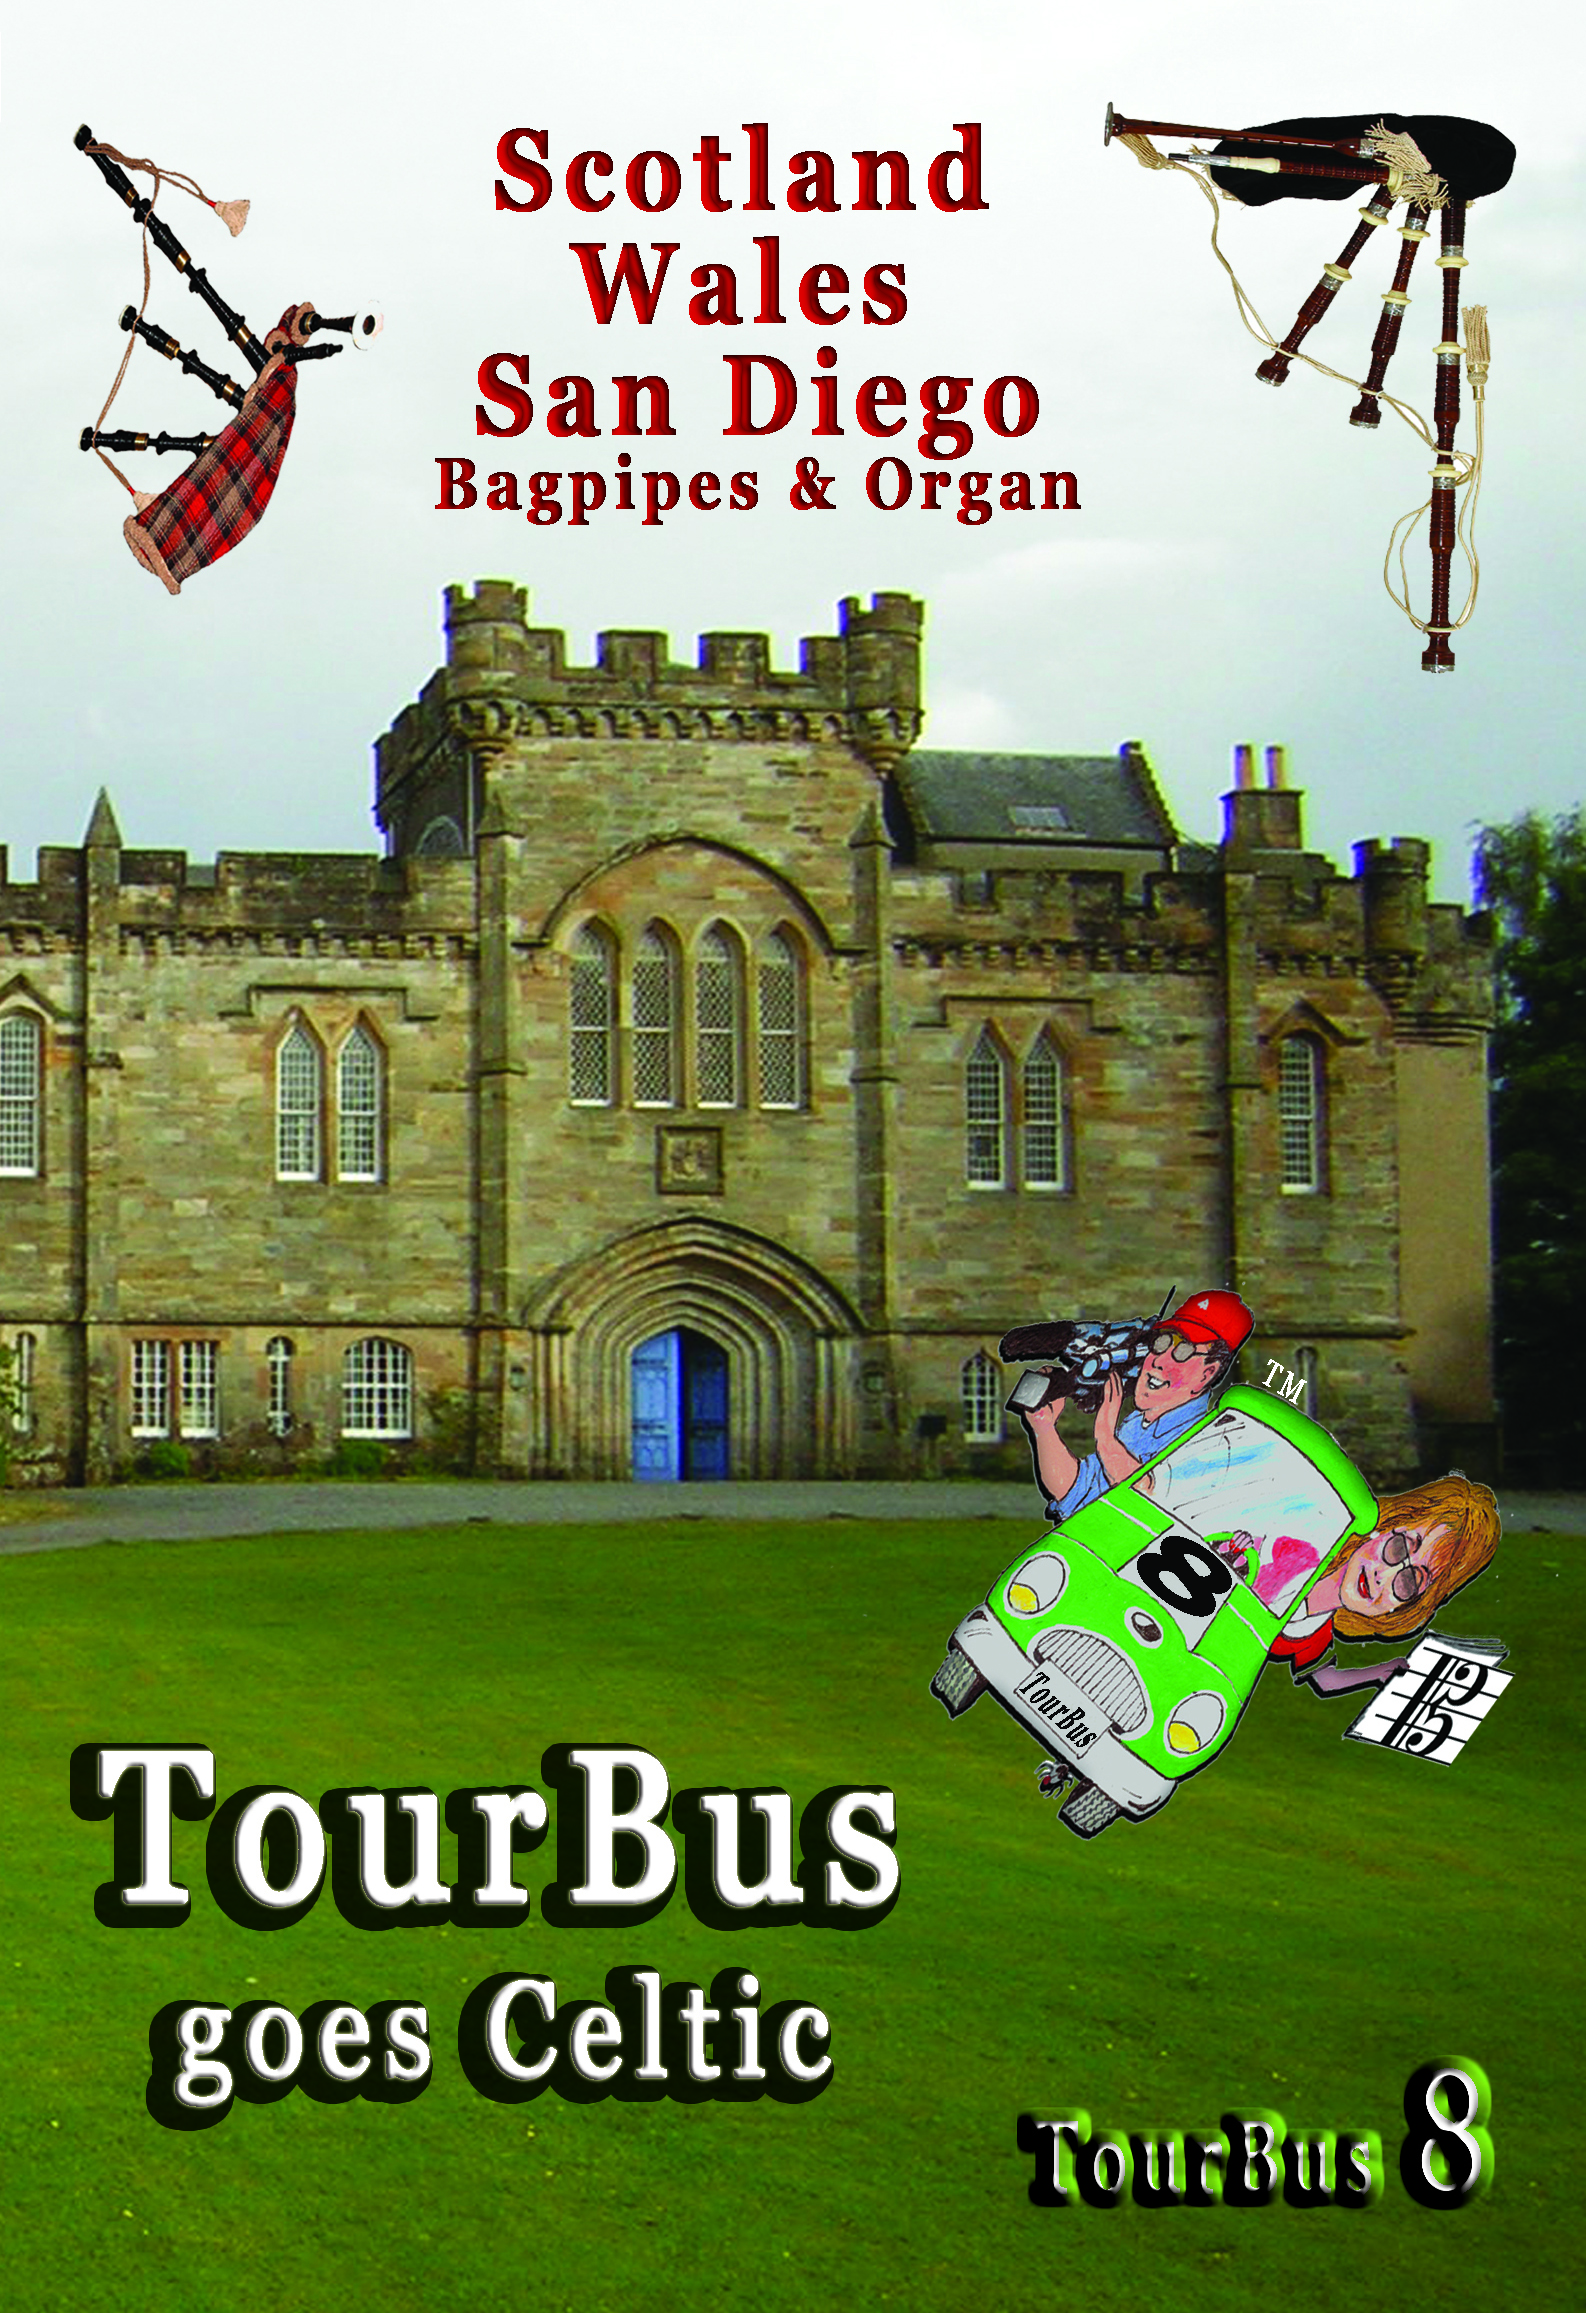 TourBus goes Celtic                     - Bagpip[es & Organ